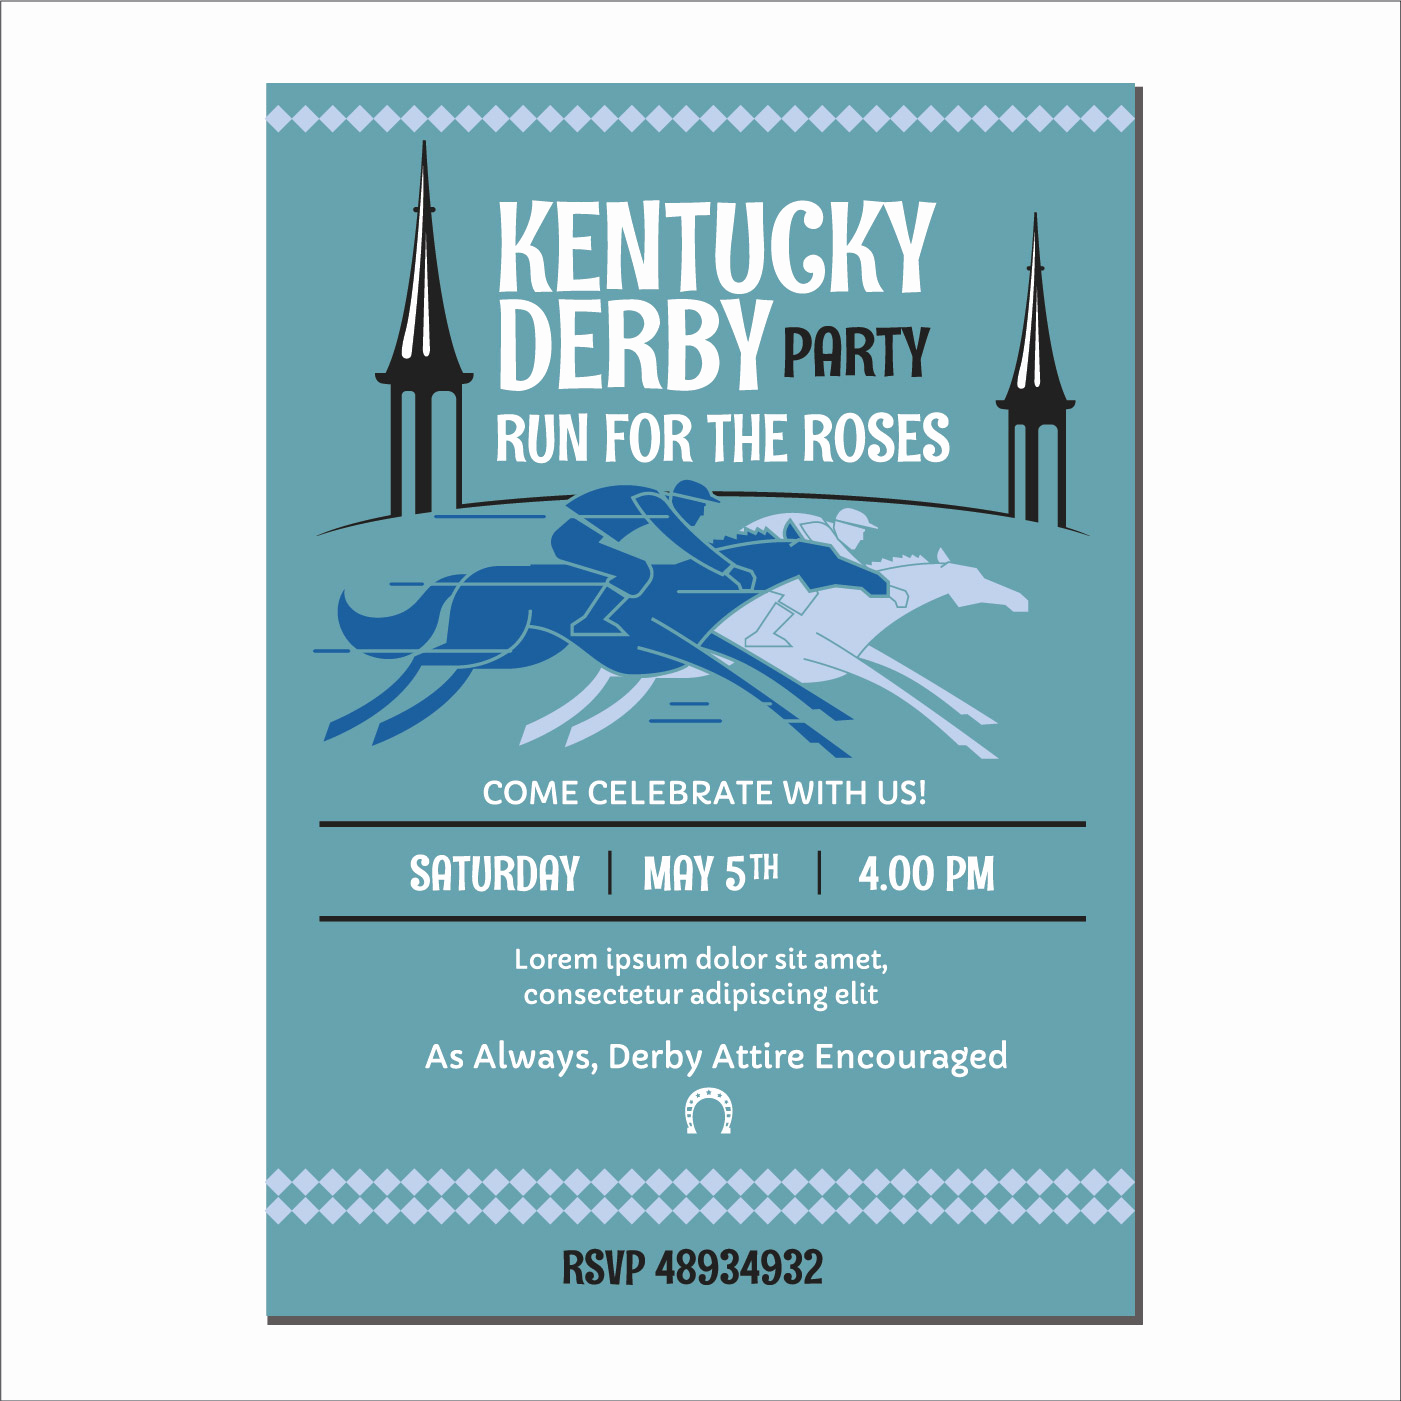 Kentucky Derby Invitation Templates Free Inspirational Jockey On A Thoroughbred Horse Runs On Kentucky Derby